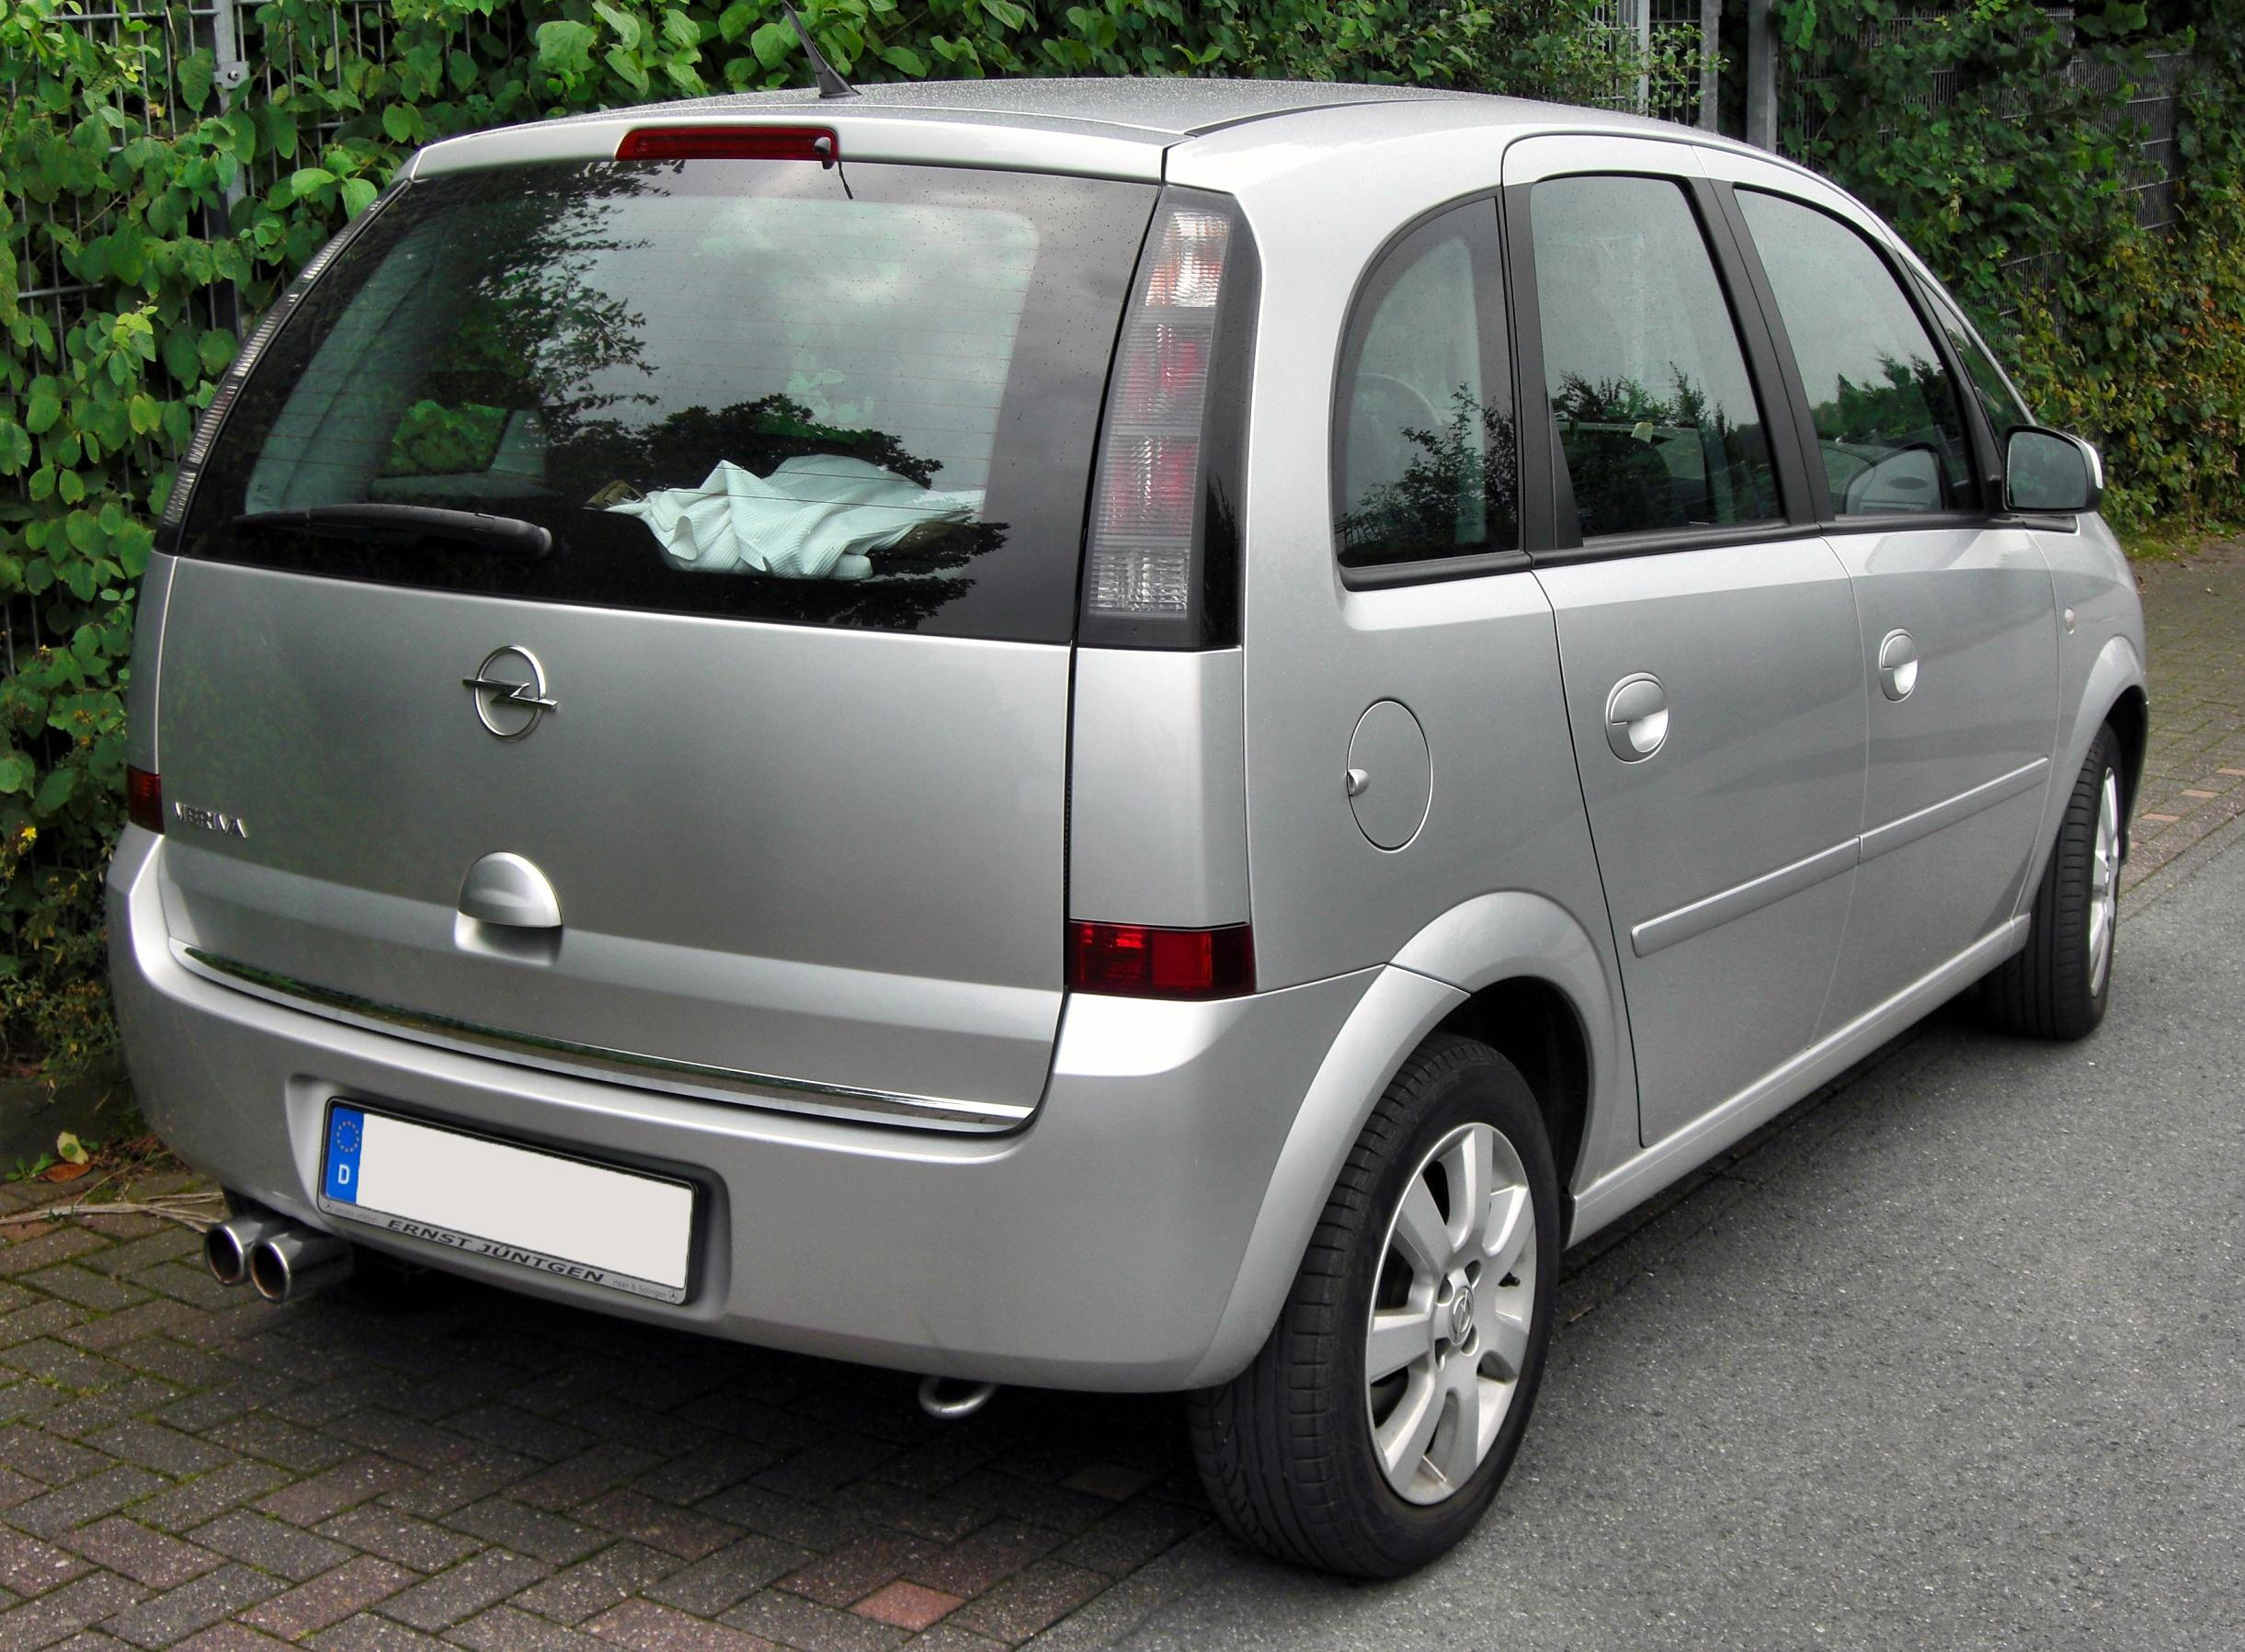 file opel meriva facelift 20090812 rear jpg wikimedia commons. Black Bedroom Furniture Sets. Home Design Ideas